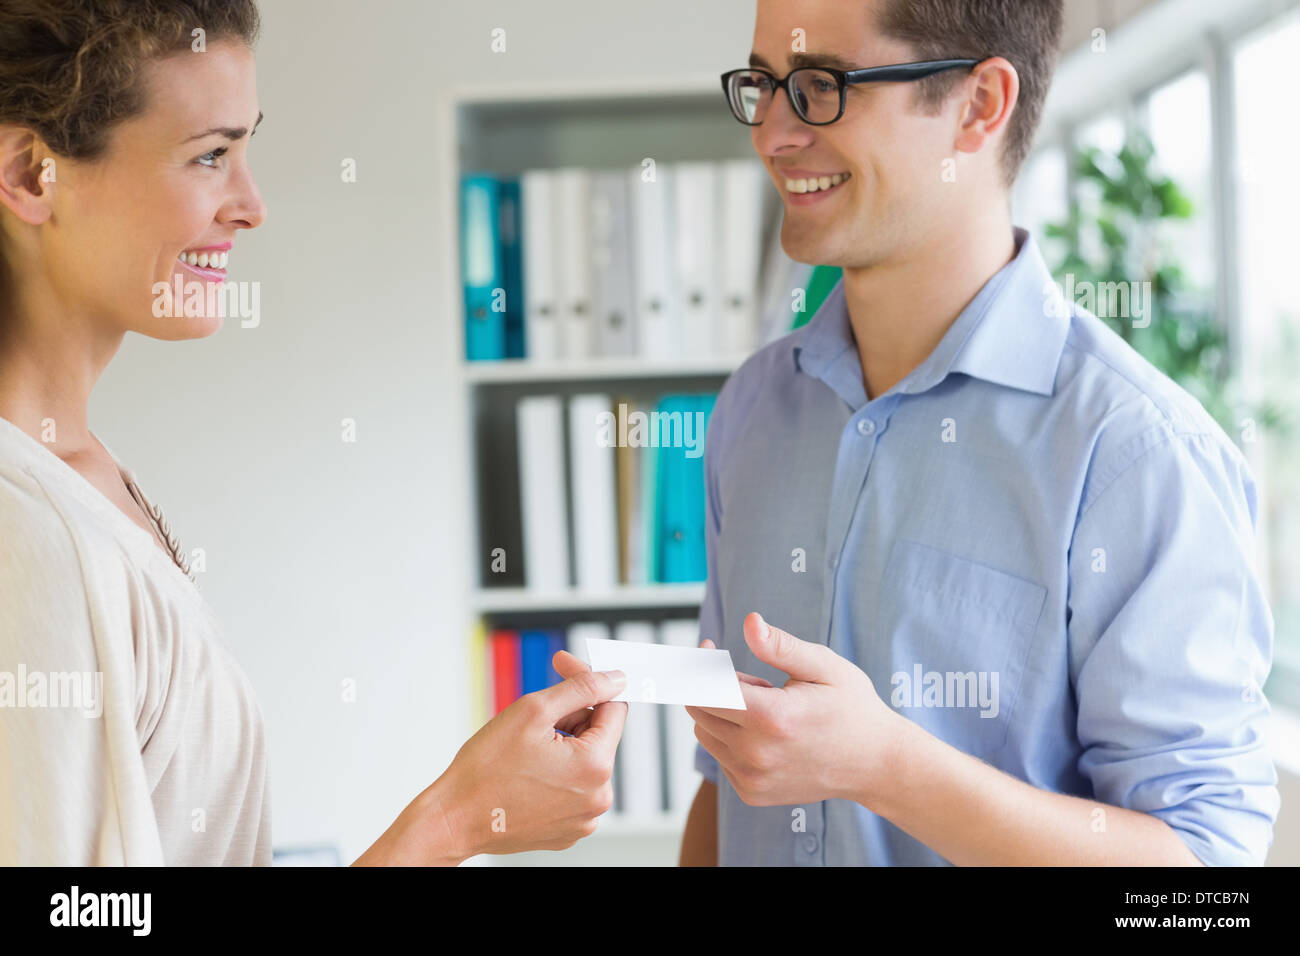 Smiling business people exchanging visiting card - Stock Image